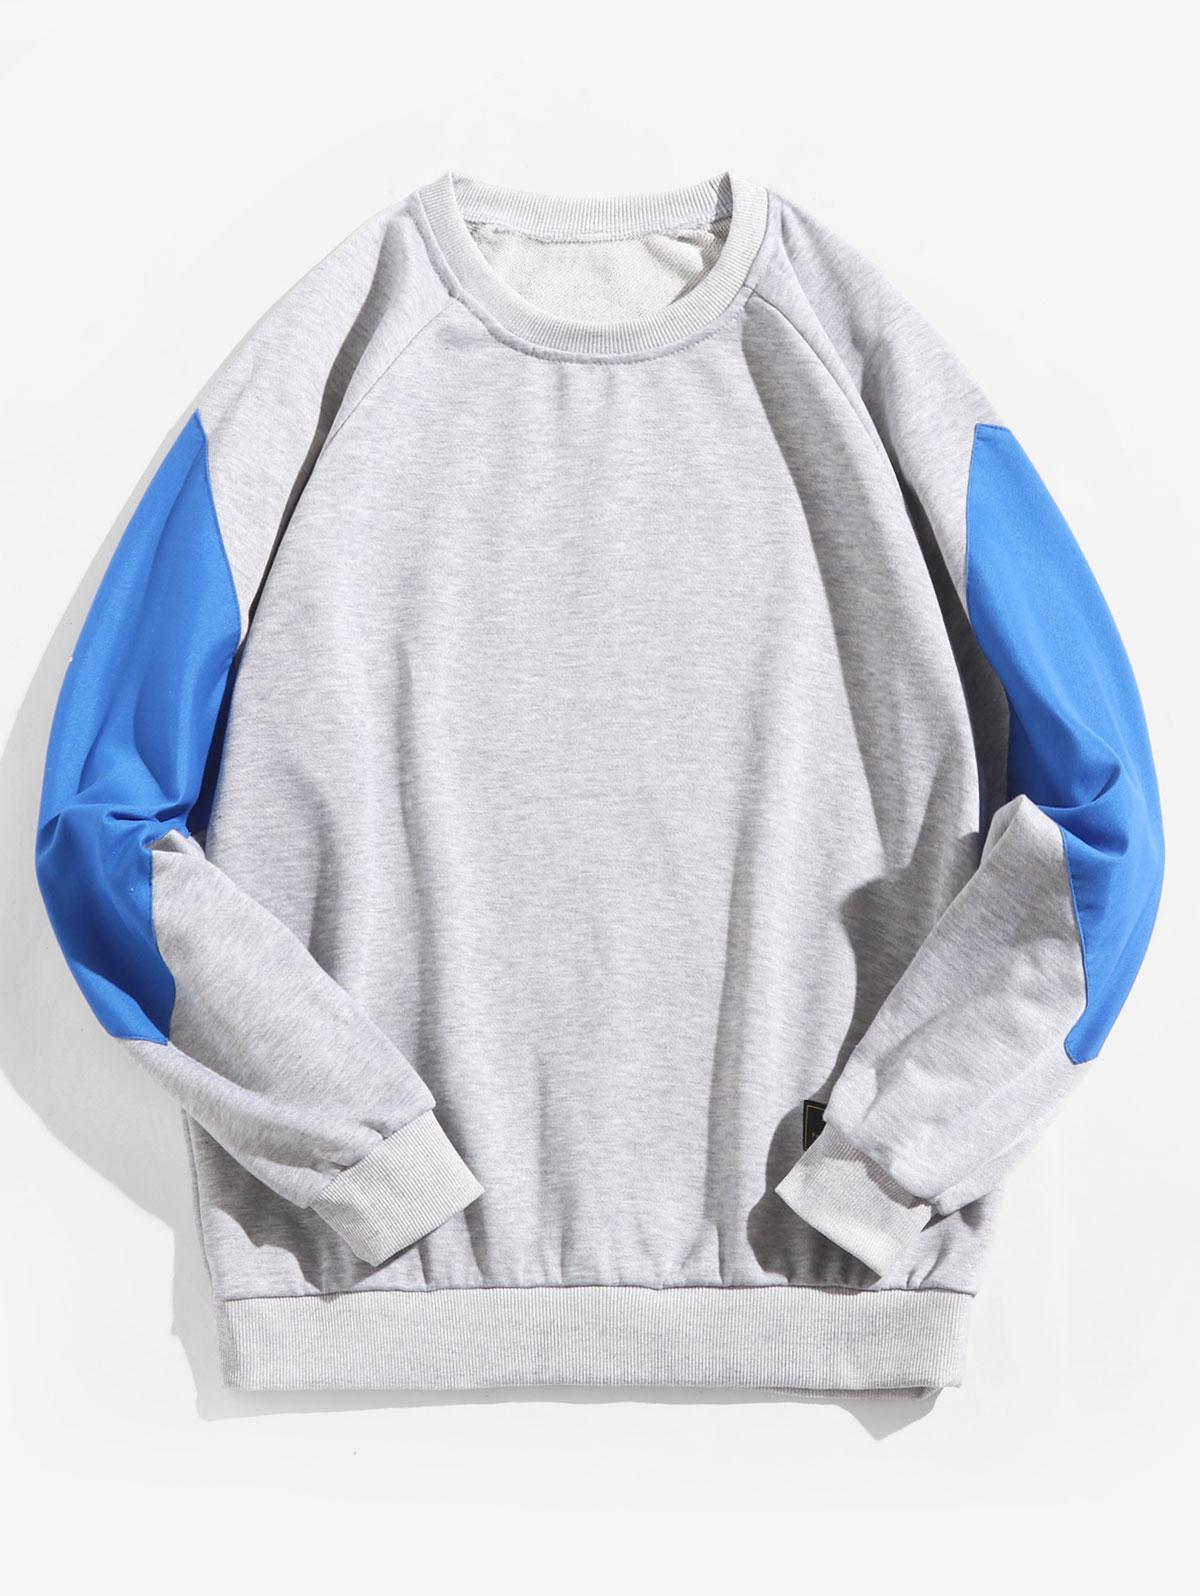 Raglan Sleeve Color Block Splicing Round Neck Sweatshirt фото